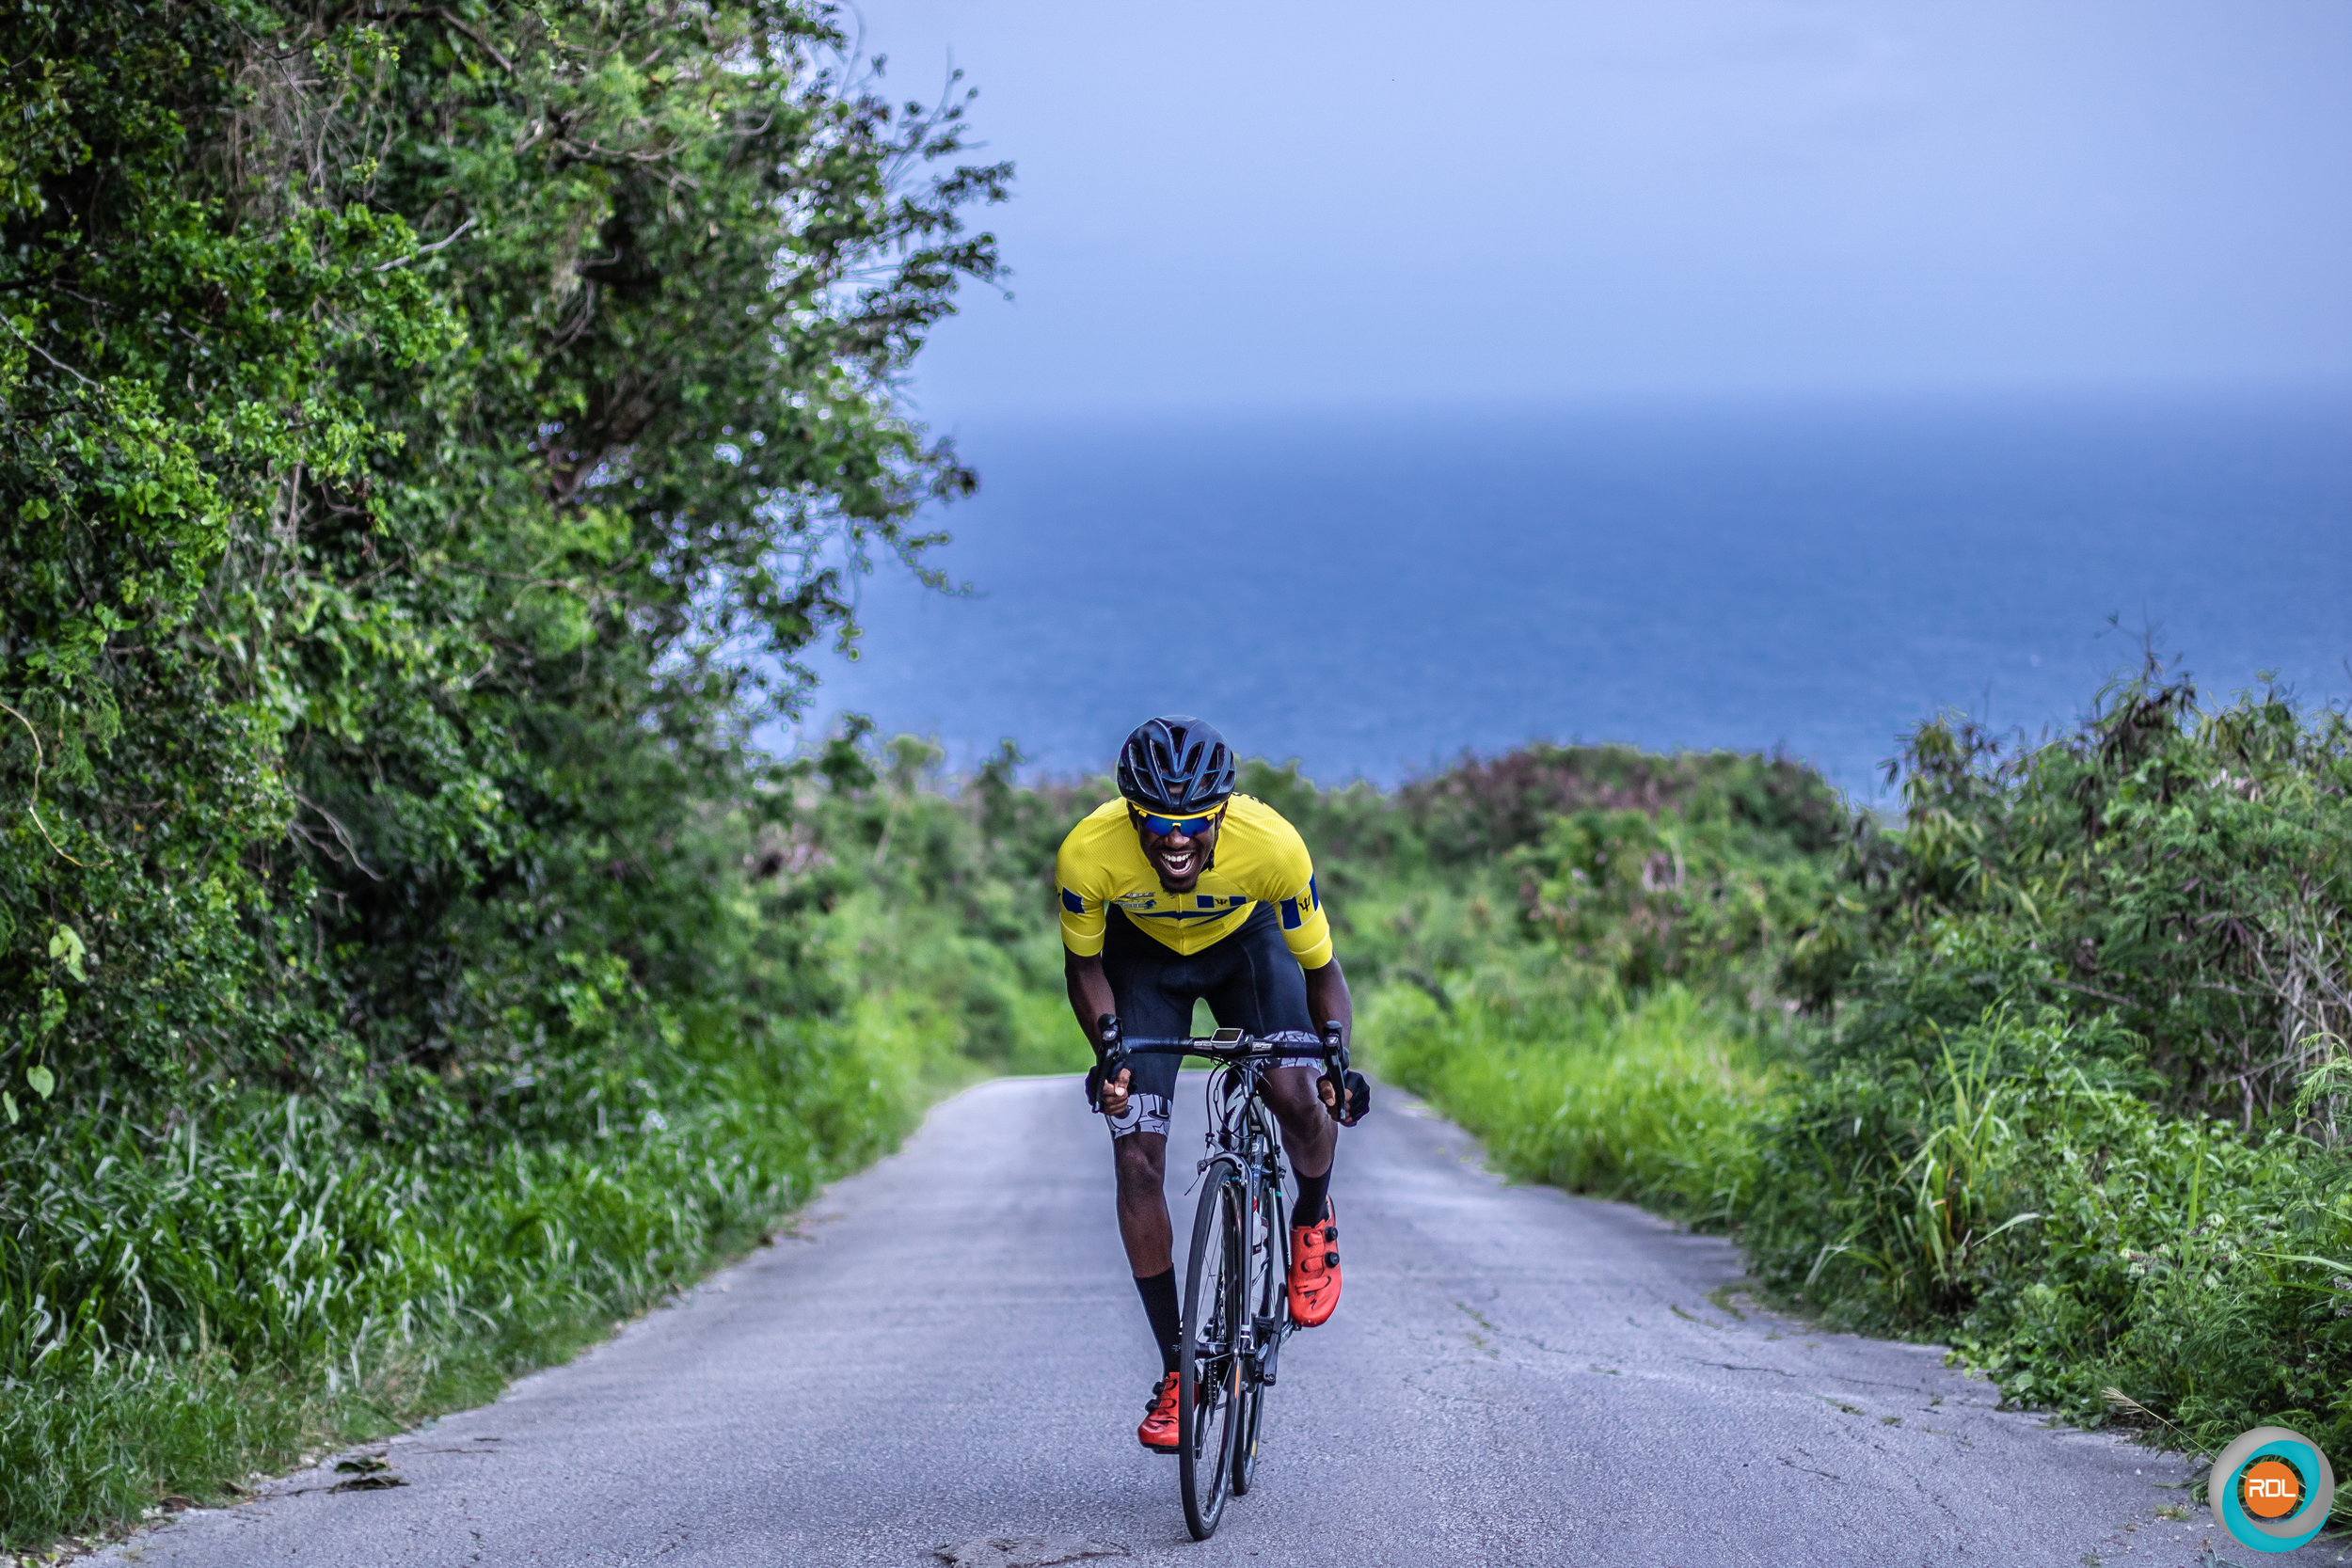 Vanderpool considers himself to be a climber, that is someone who excels more in hills, although he does like a good sprint as well. He is looking forward to the challenge presented by Martinique's mountainous terrain.